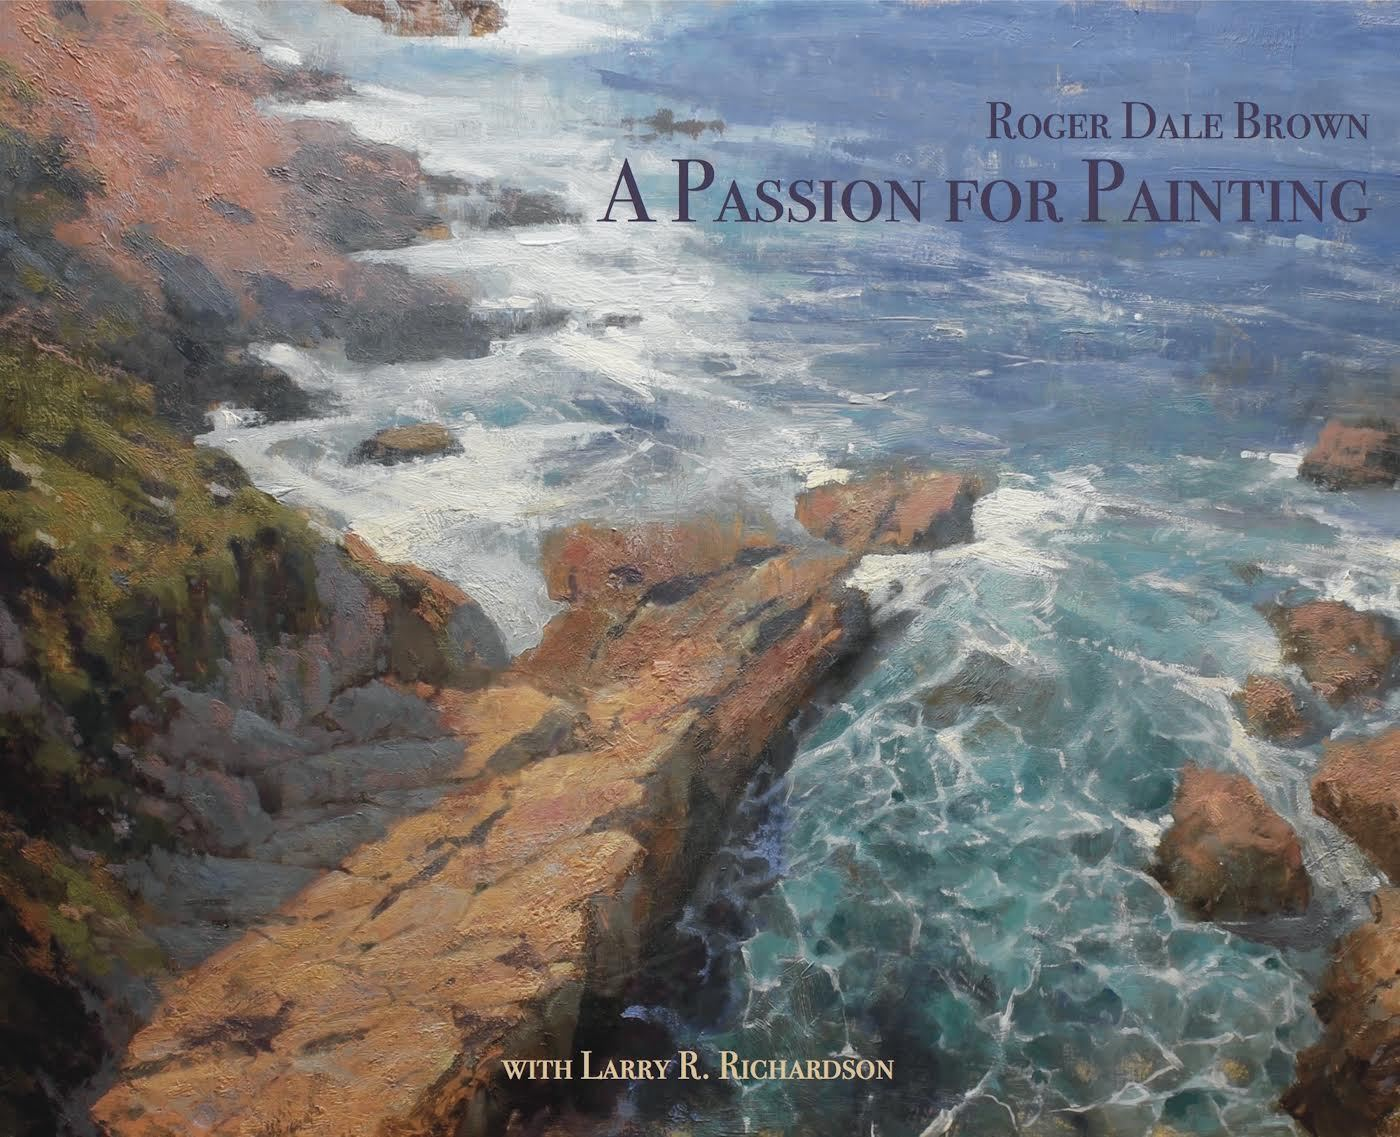 Roger Dale Brown: A Passion For Painting